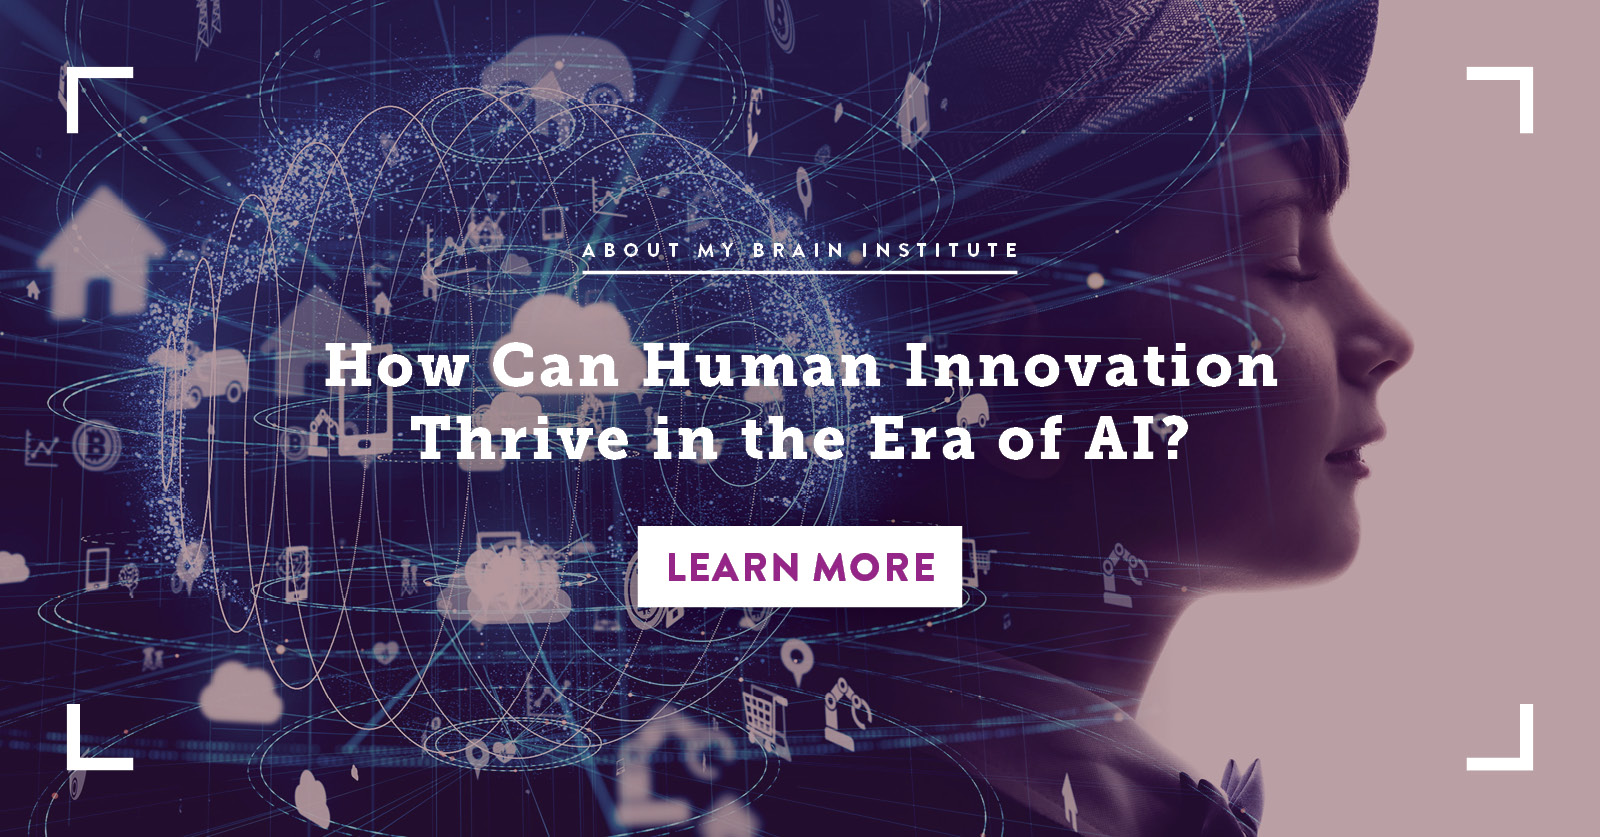 How Can Human Innovation Thrive in the Era of AI?